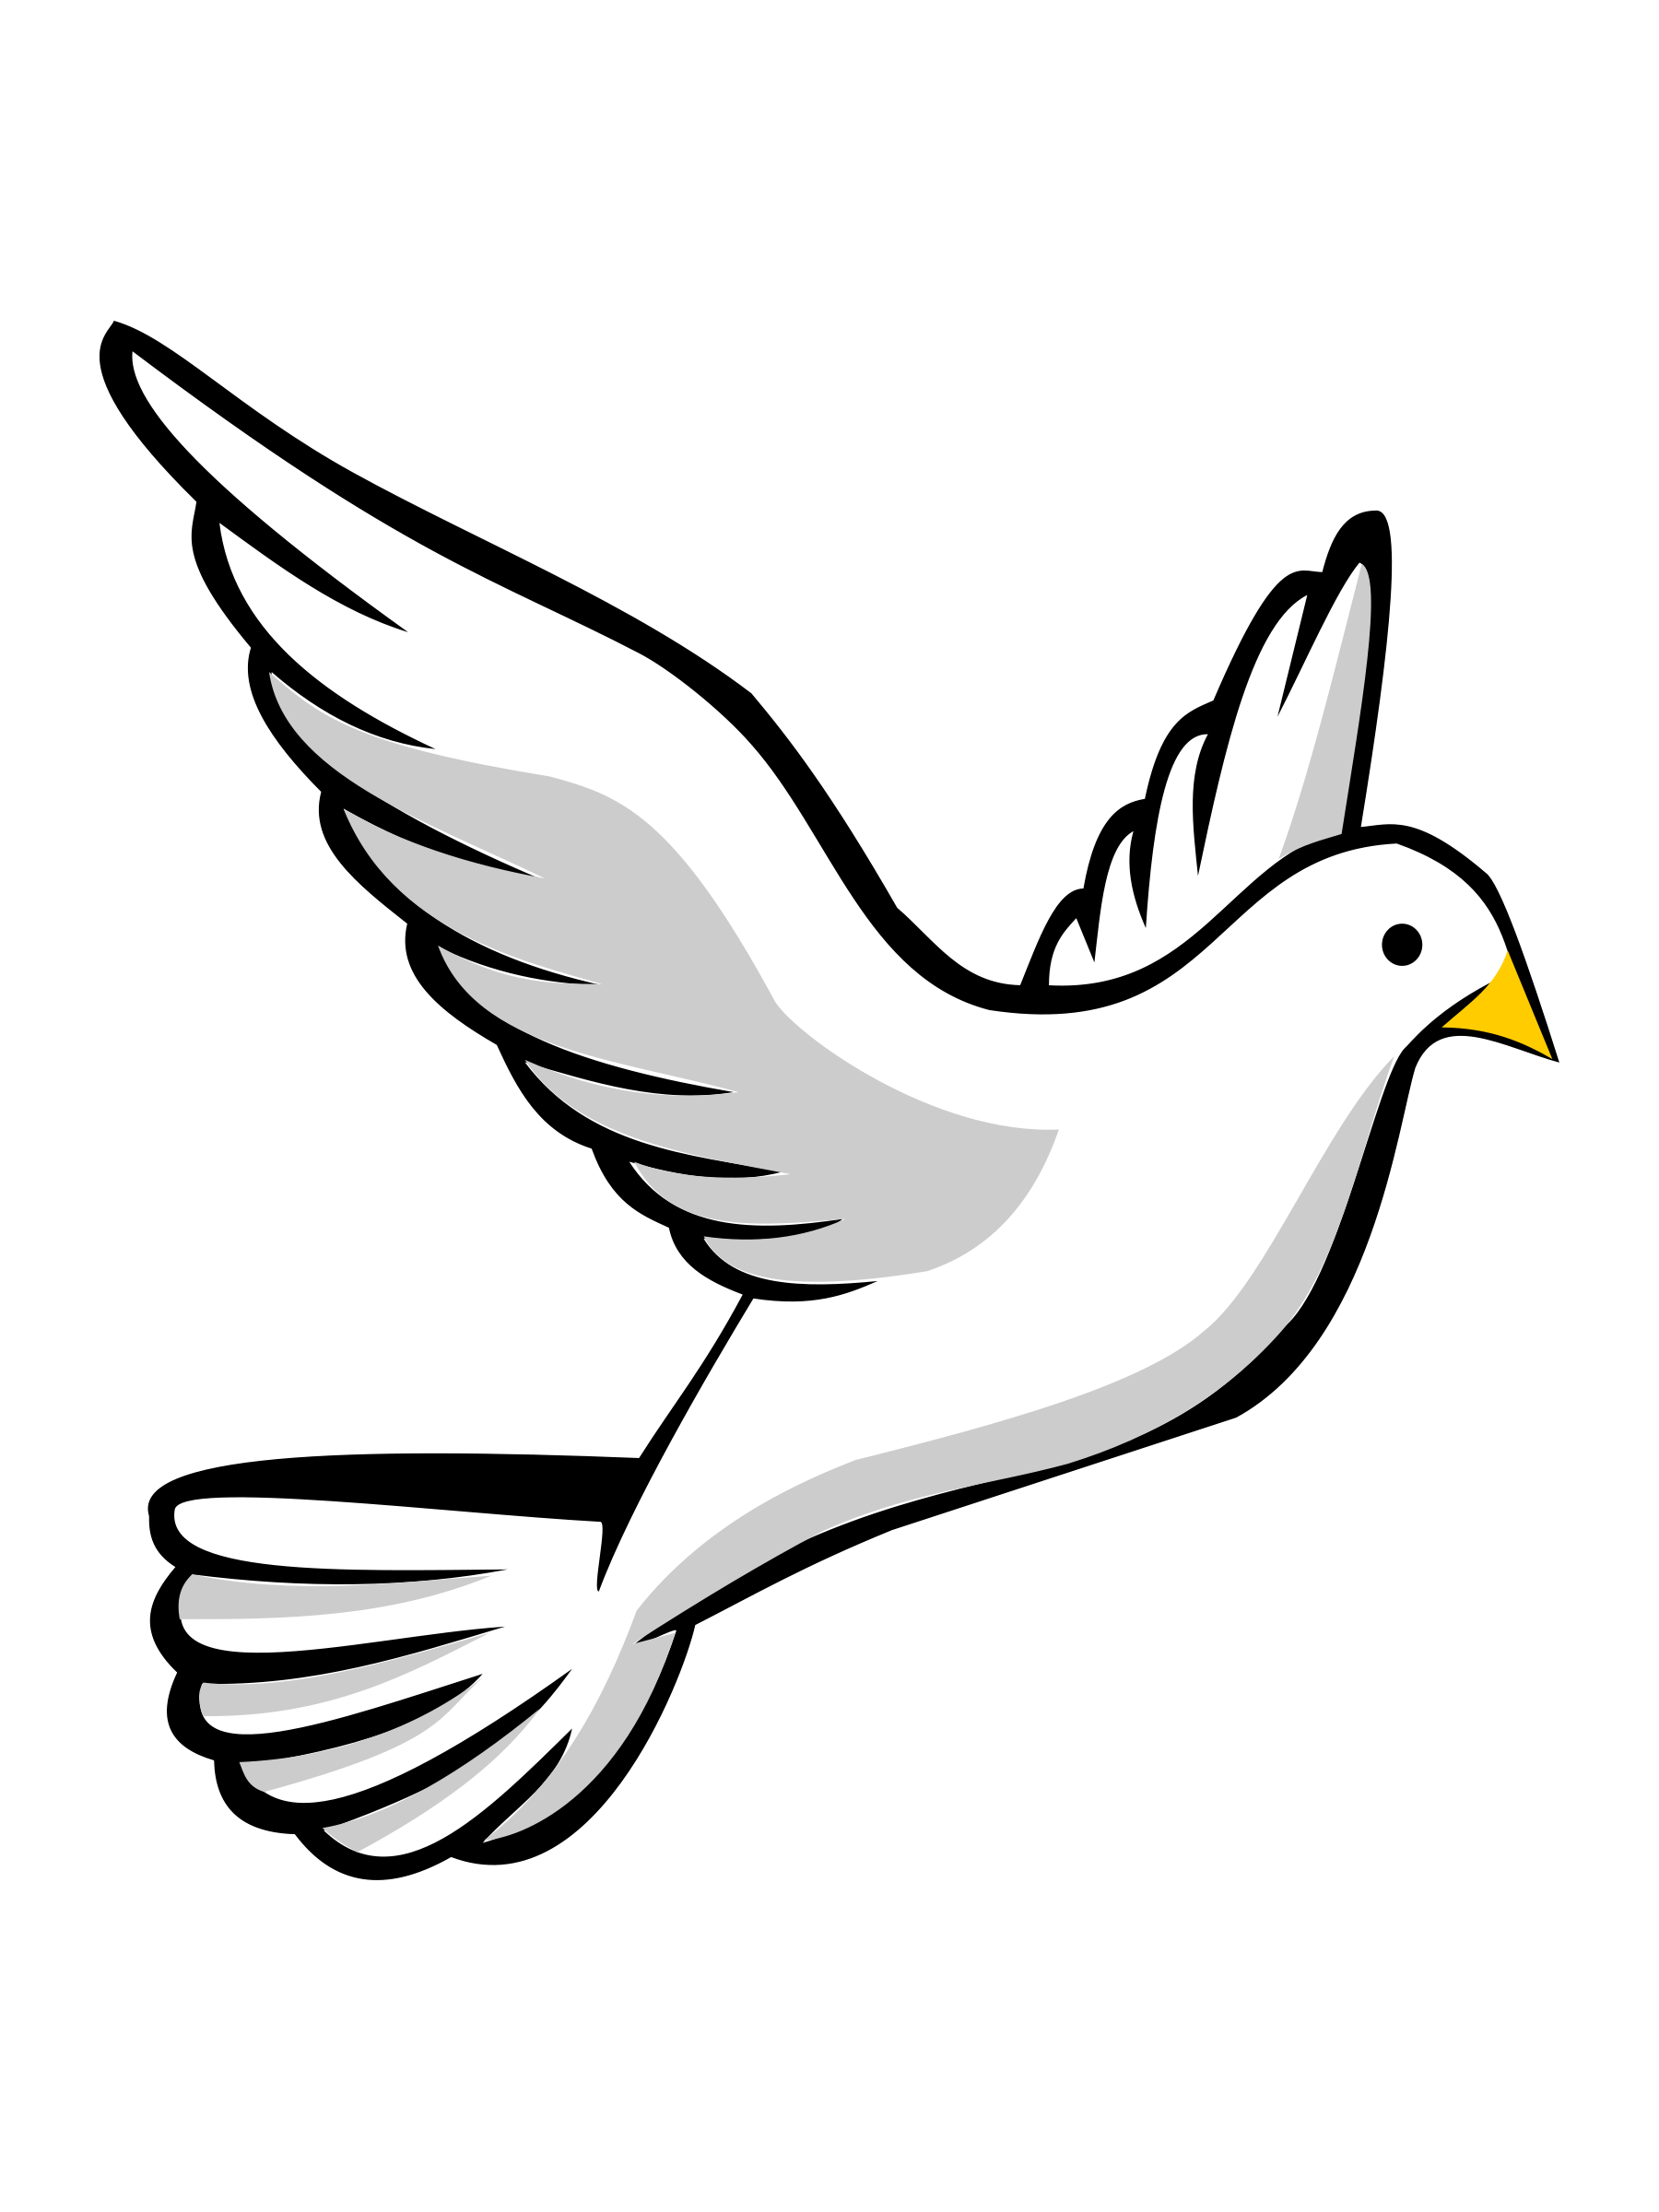 Holy Spirit Dove Clipart White Dove Clipart Flying Dove Png